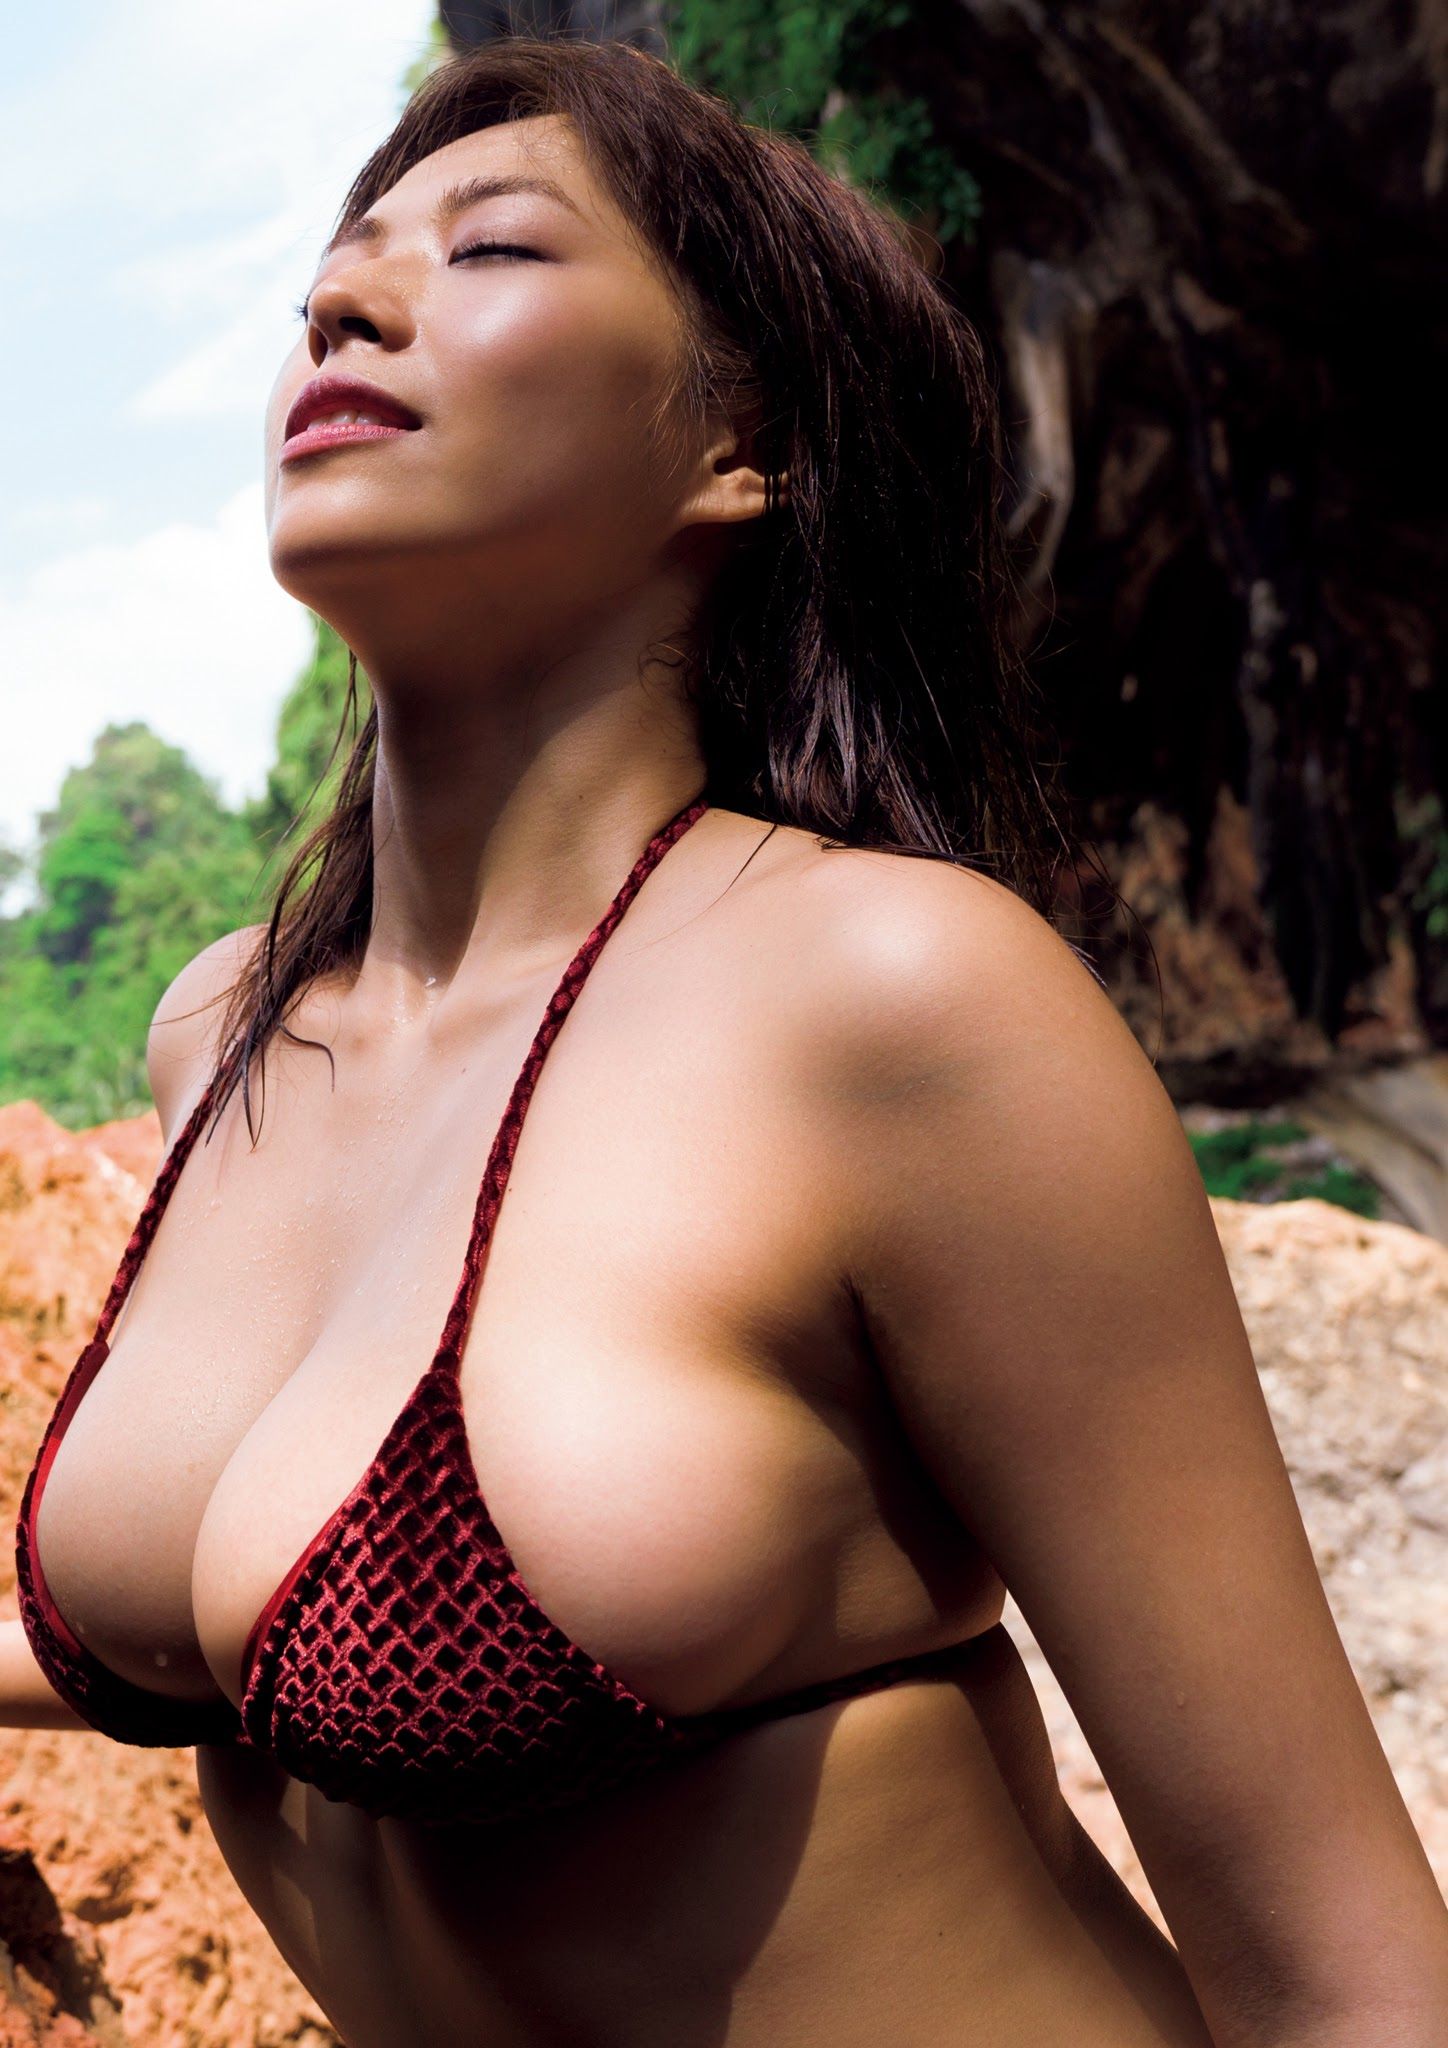 Super body of H cup Minami Wachi 2020 that exposes body and mind in tropical Thailand032